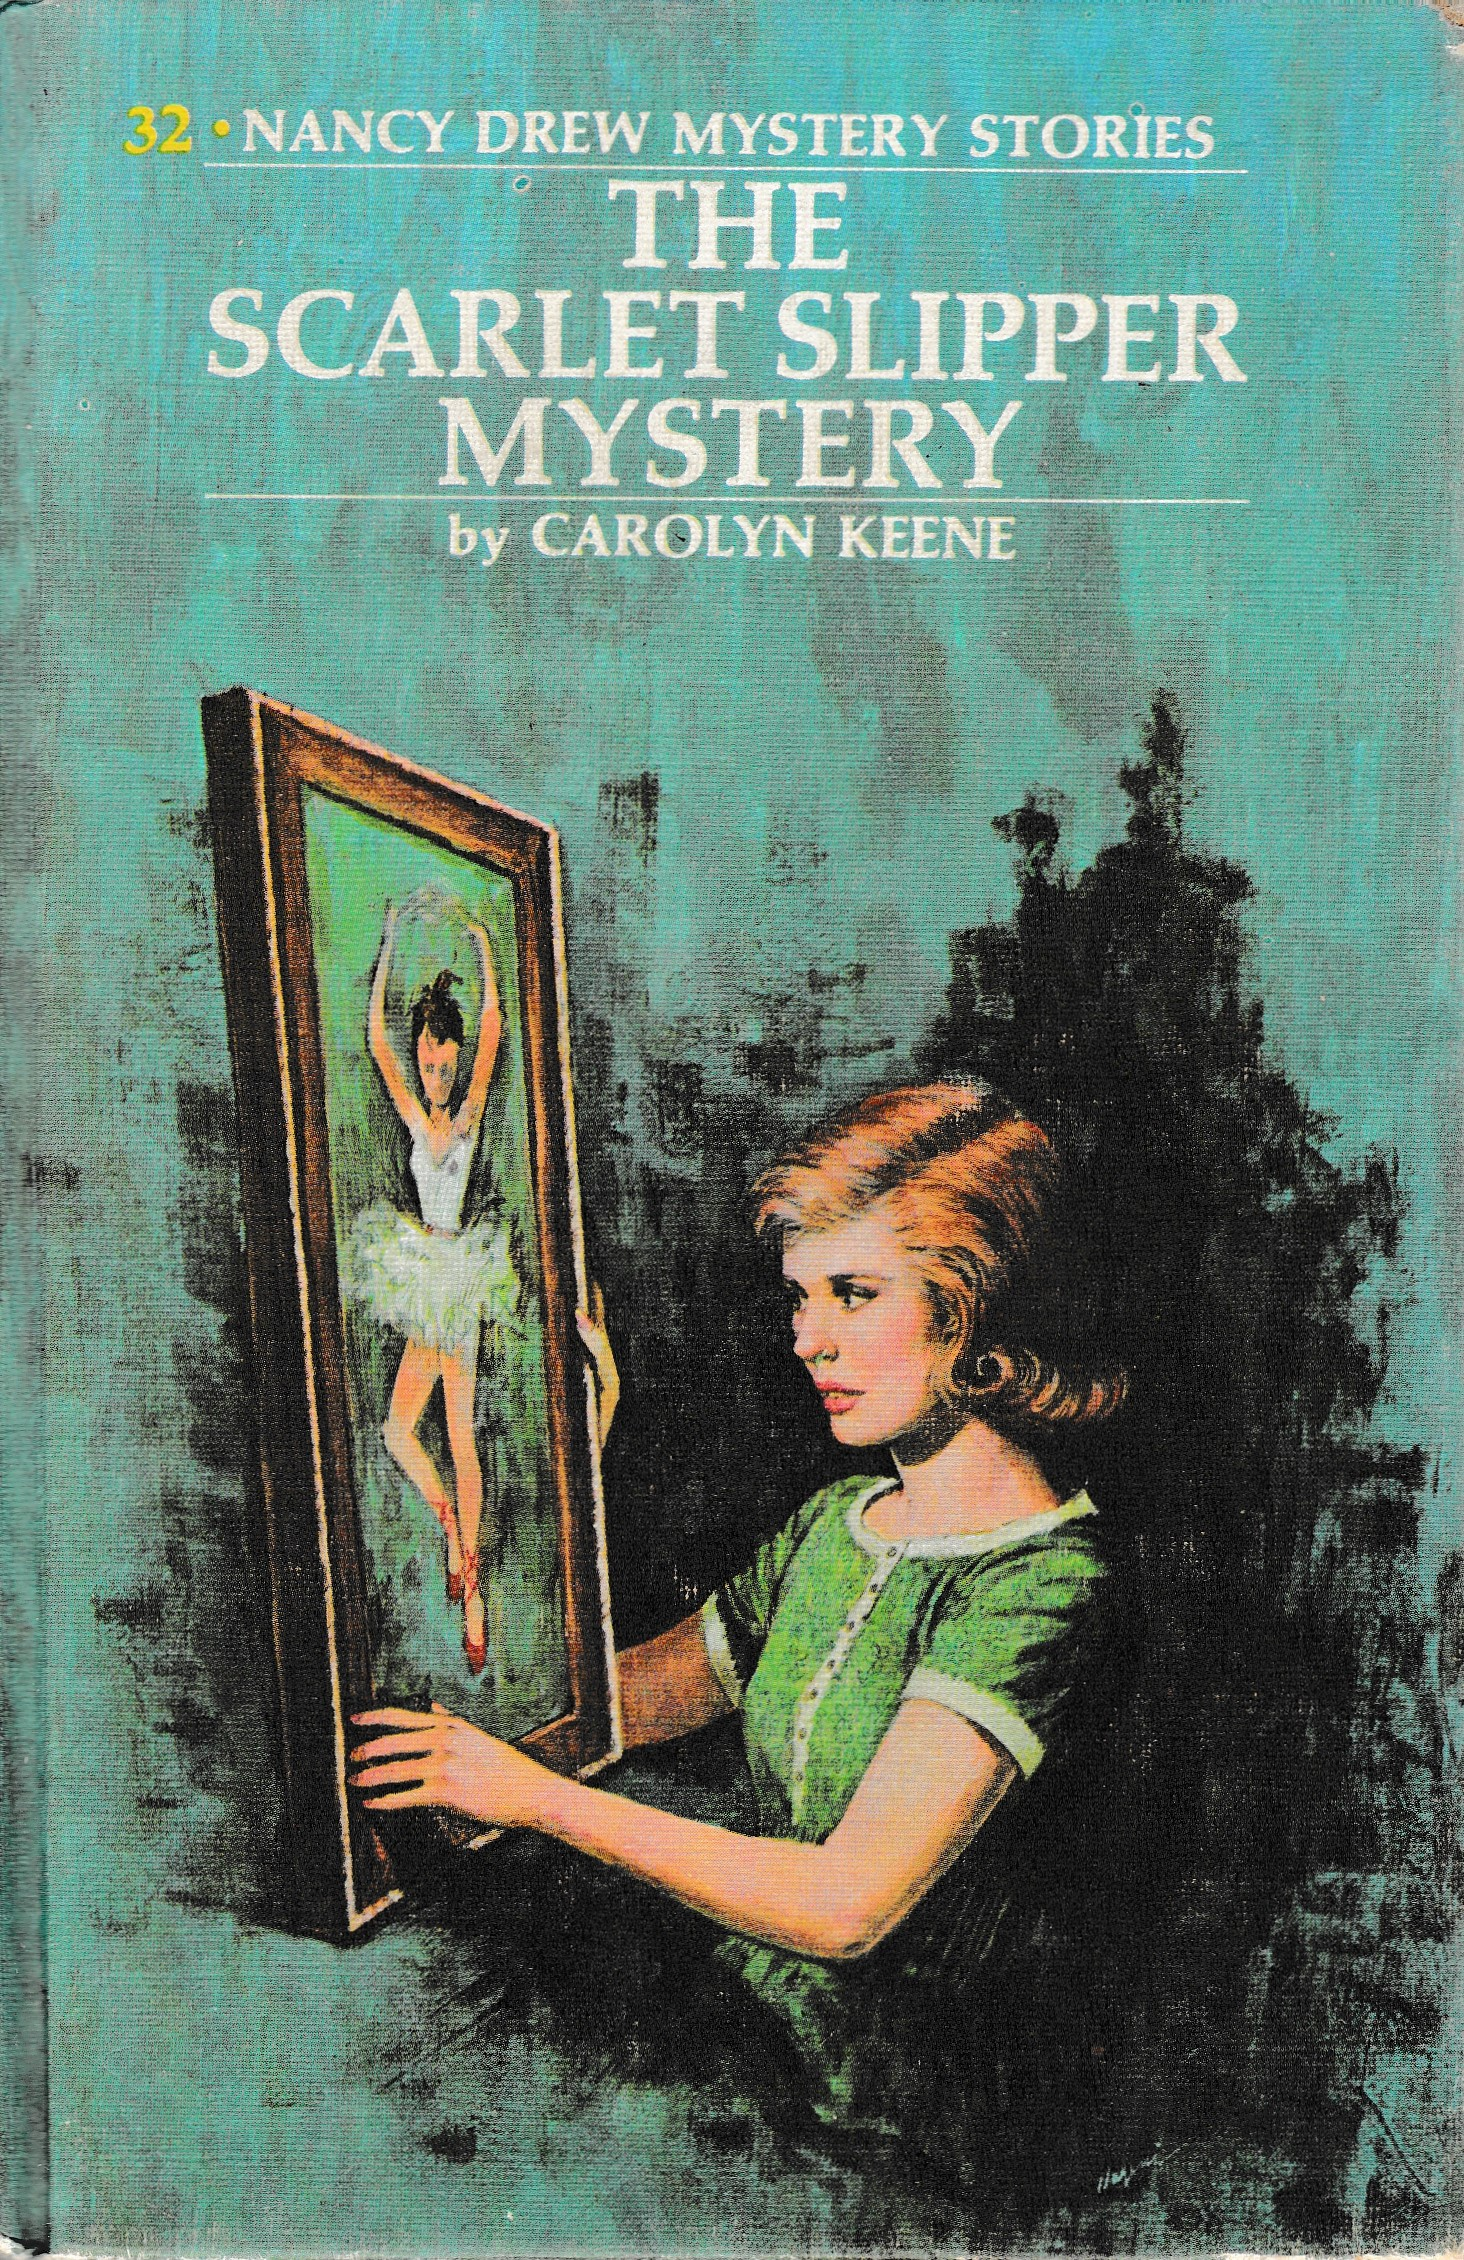 The Scarlet Slipper Mystery (Nancy Drew Mystery Stories, #32)